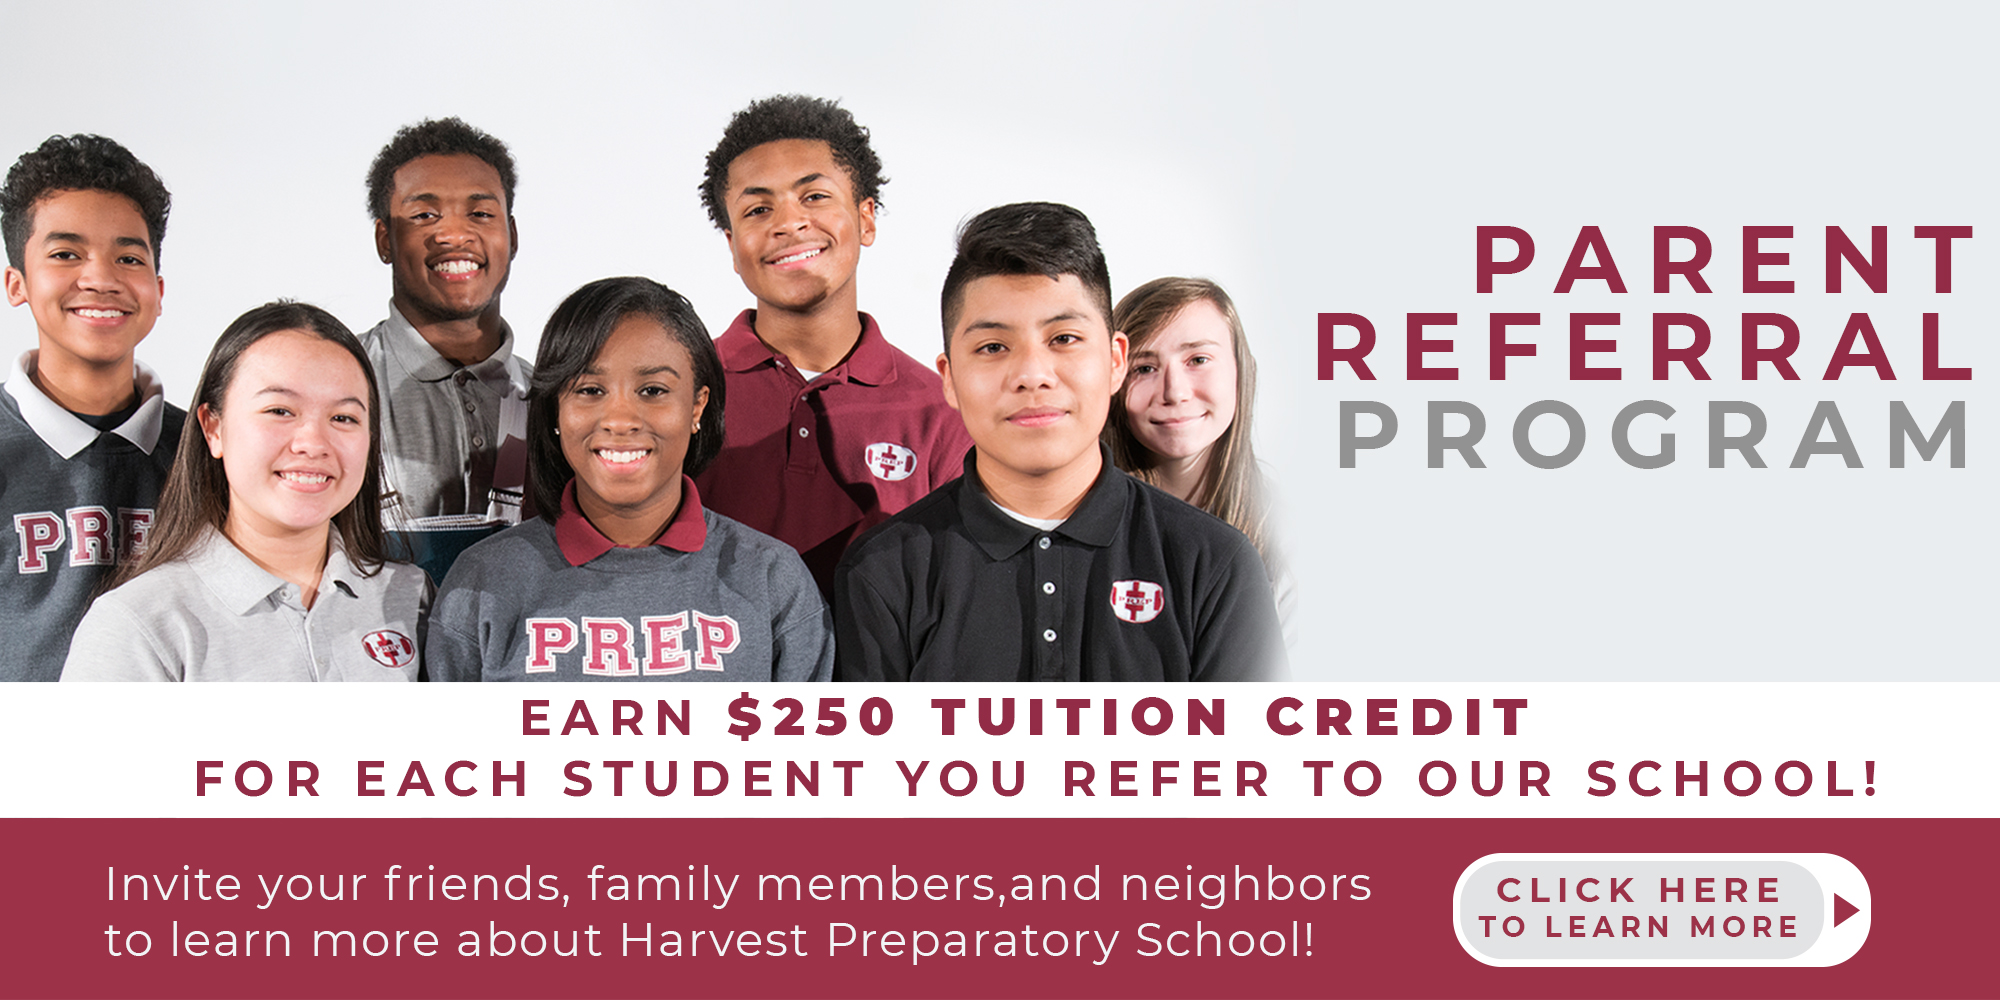 Parent Referral Program